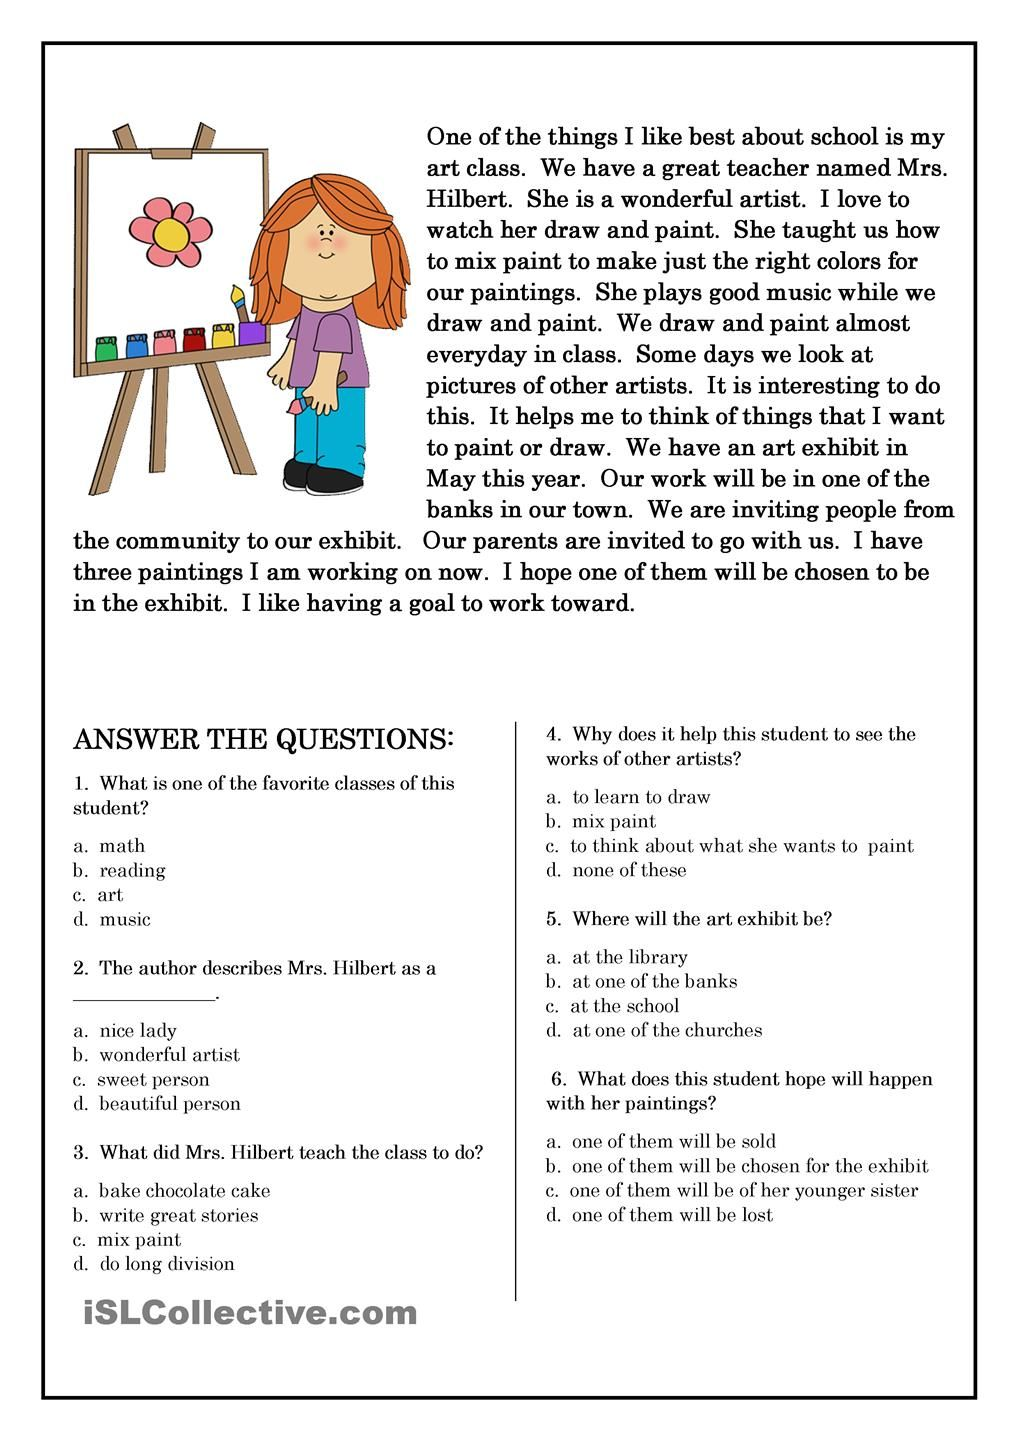 Worksheet Grade 5 English Comprehension Worksheets 1000 images about reading comprehension on pinterest simple sentences grade 1 and stories